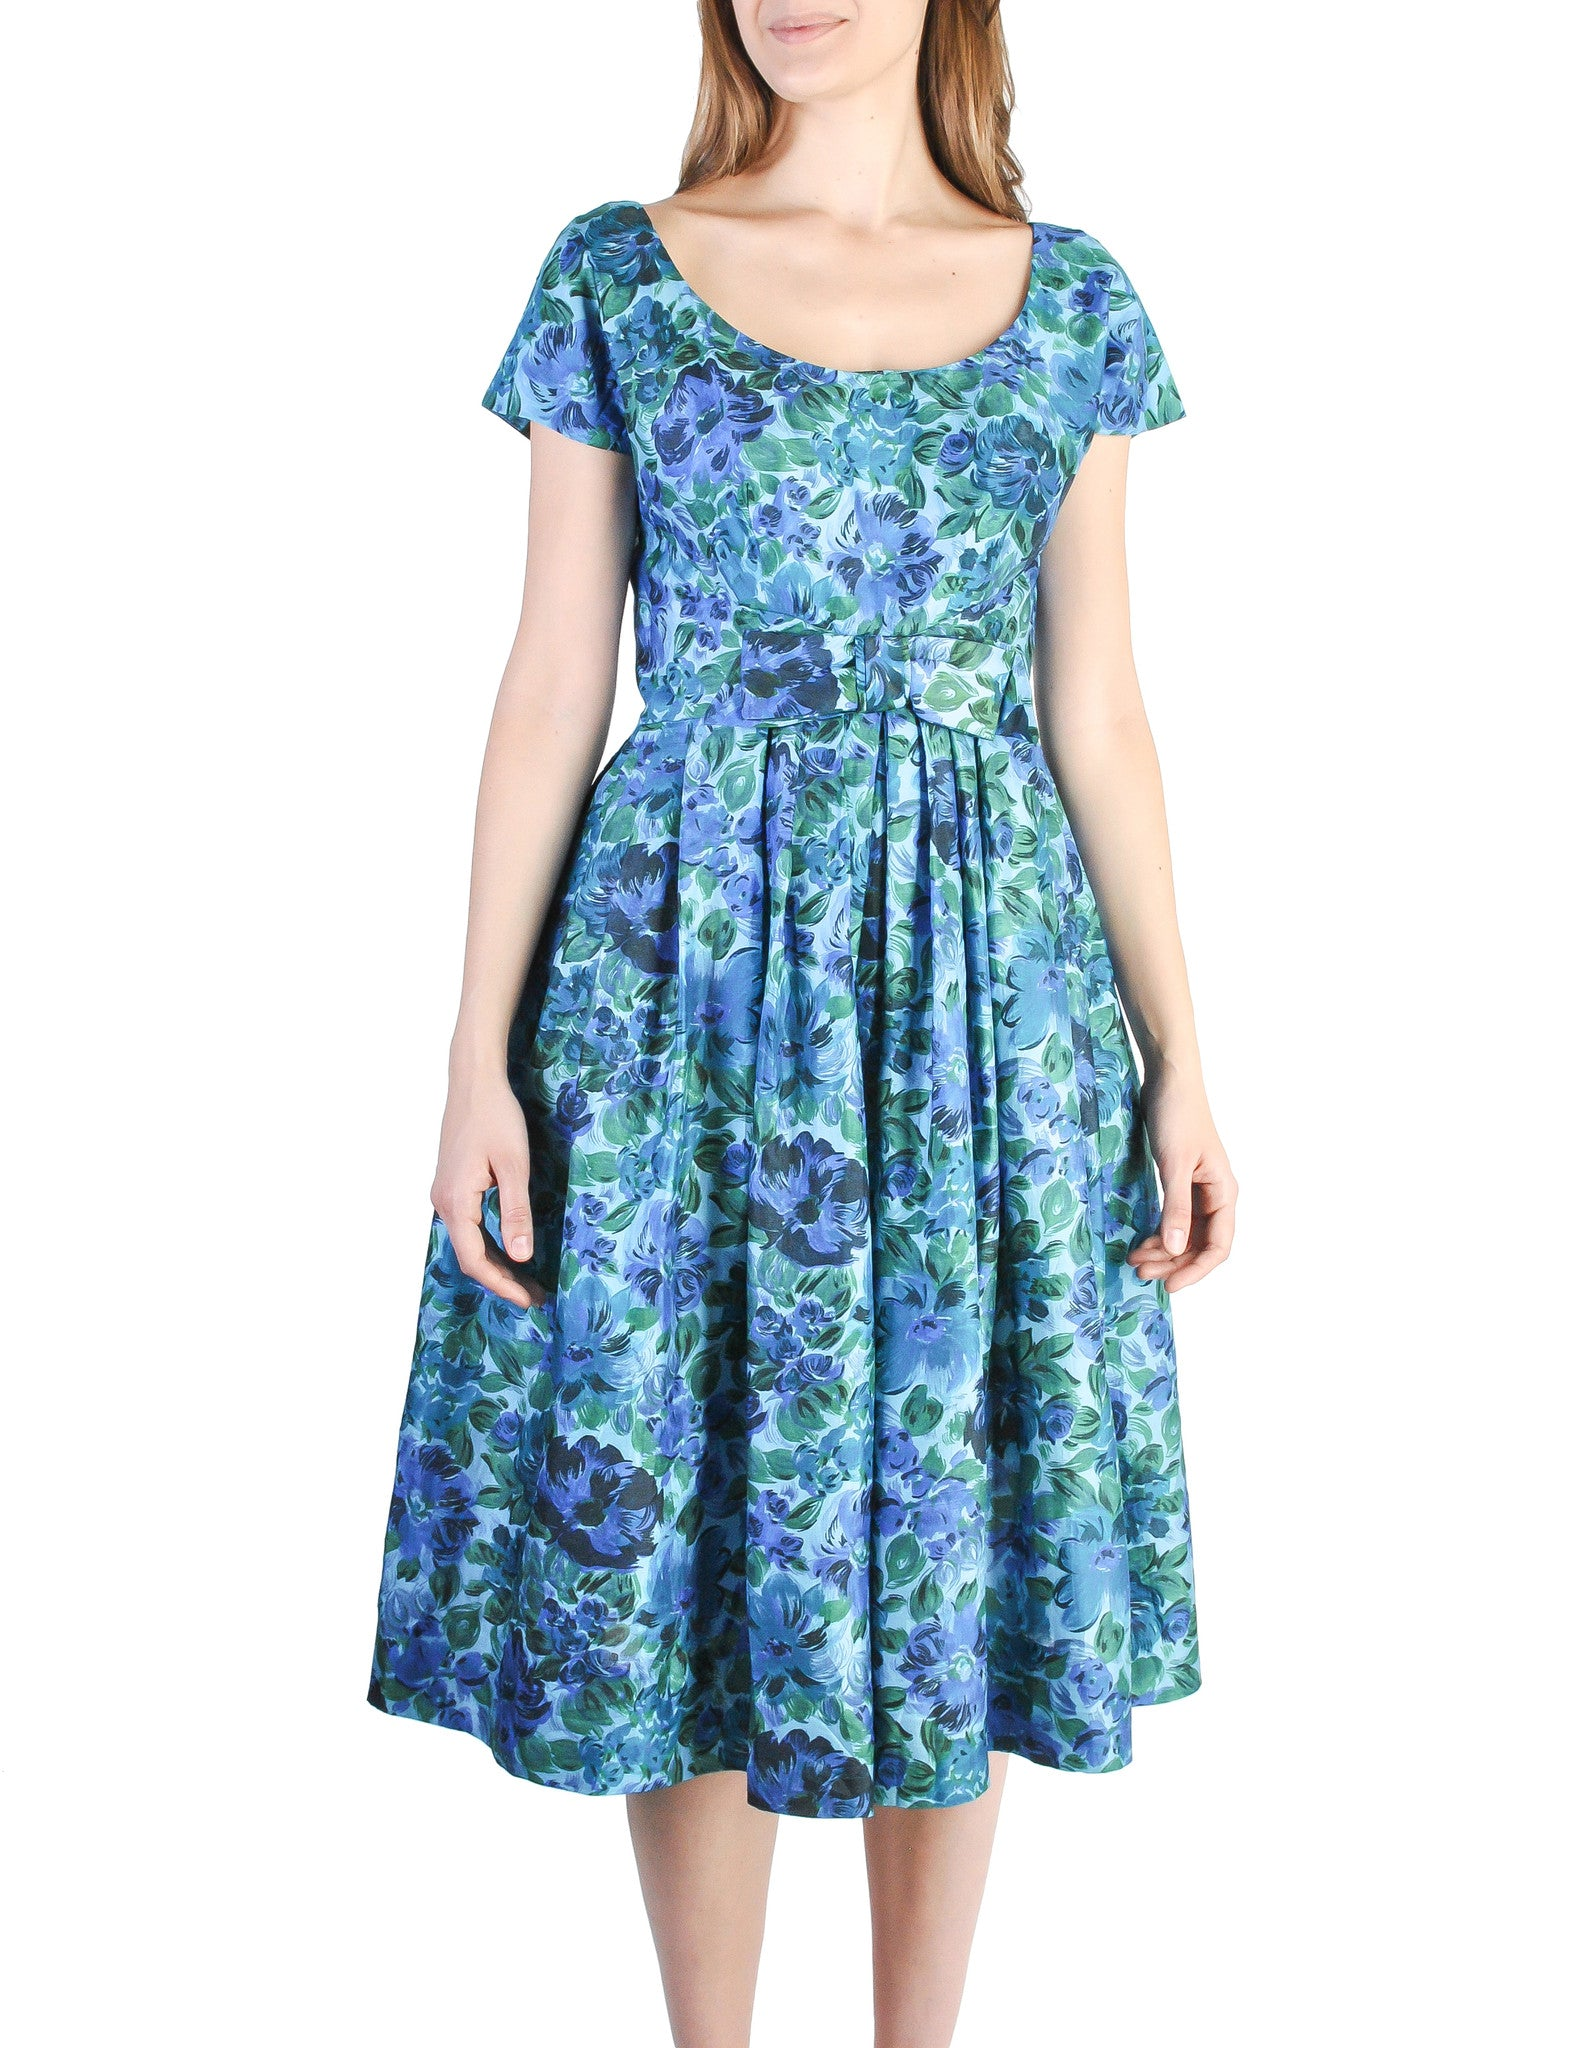 Vintage 1950s Blue Floral Raw Silk Full Skirt Dress - Amarcord Vintage Fashion  - 1